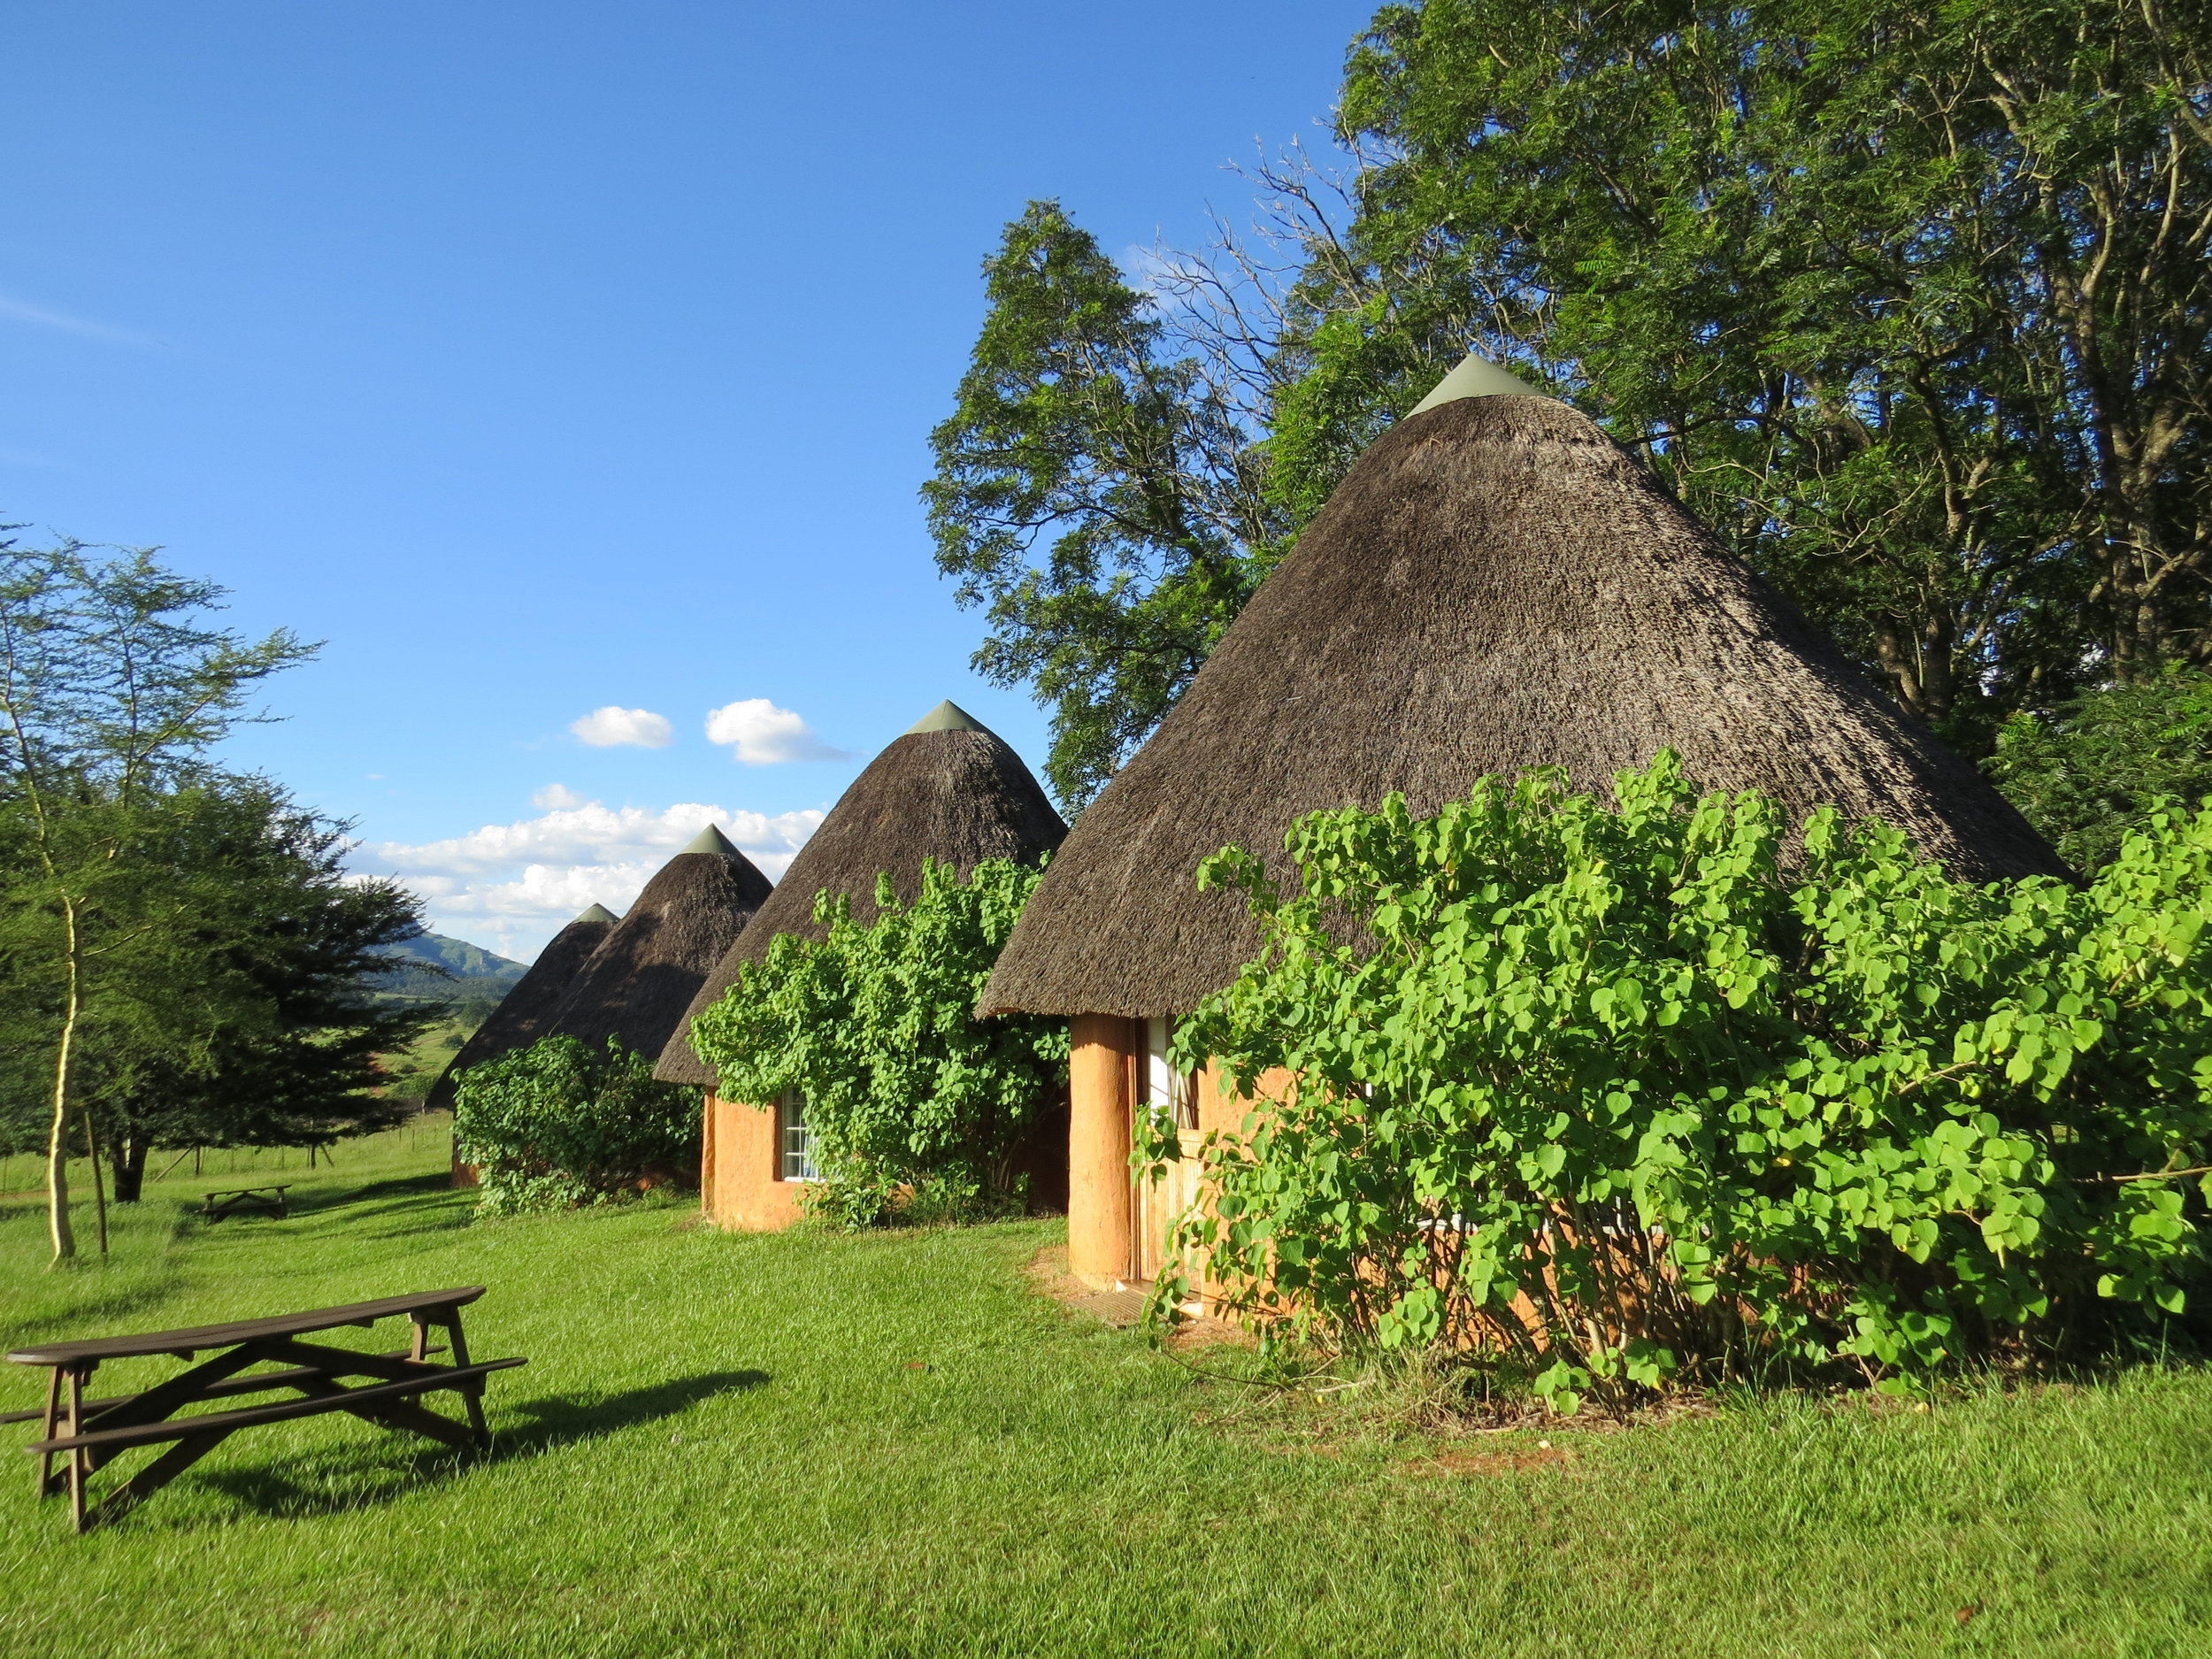 Our thatched hut was awesome!